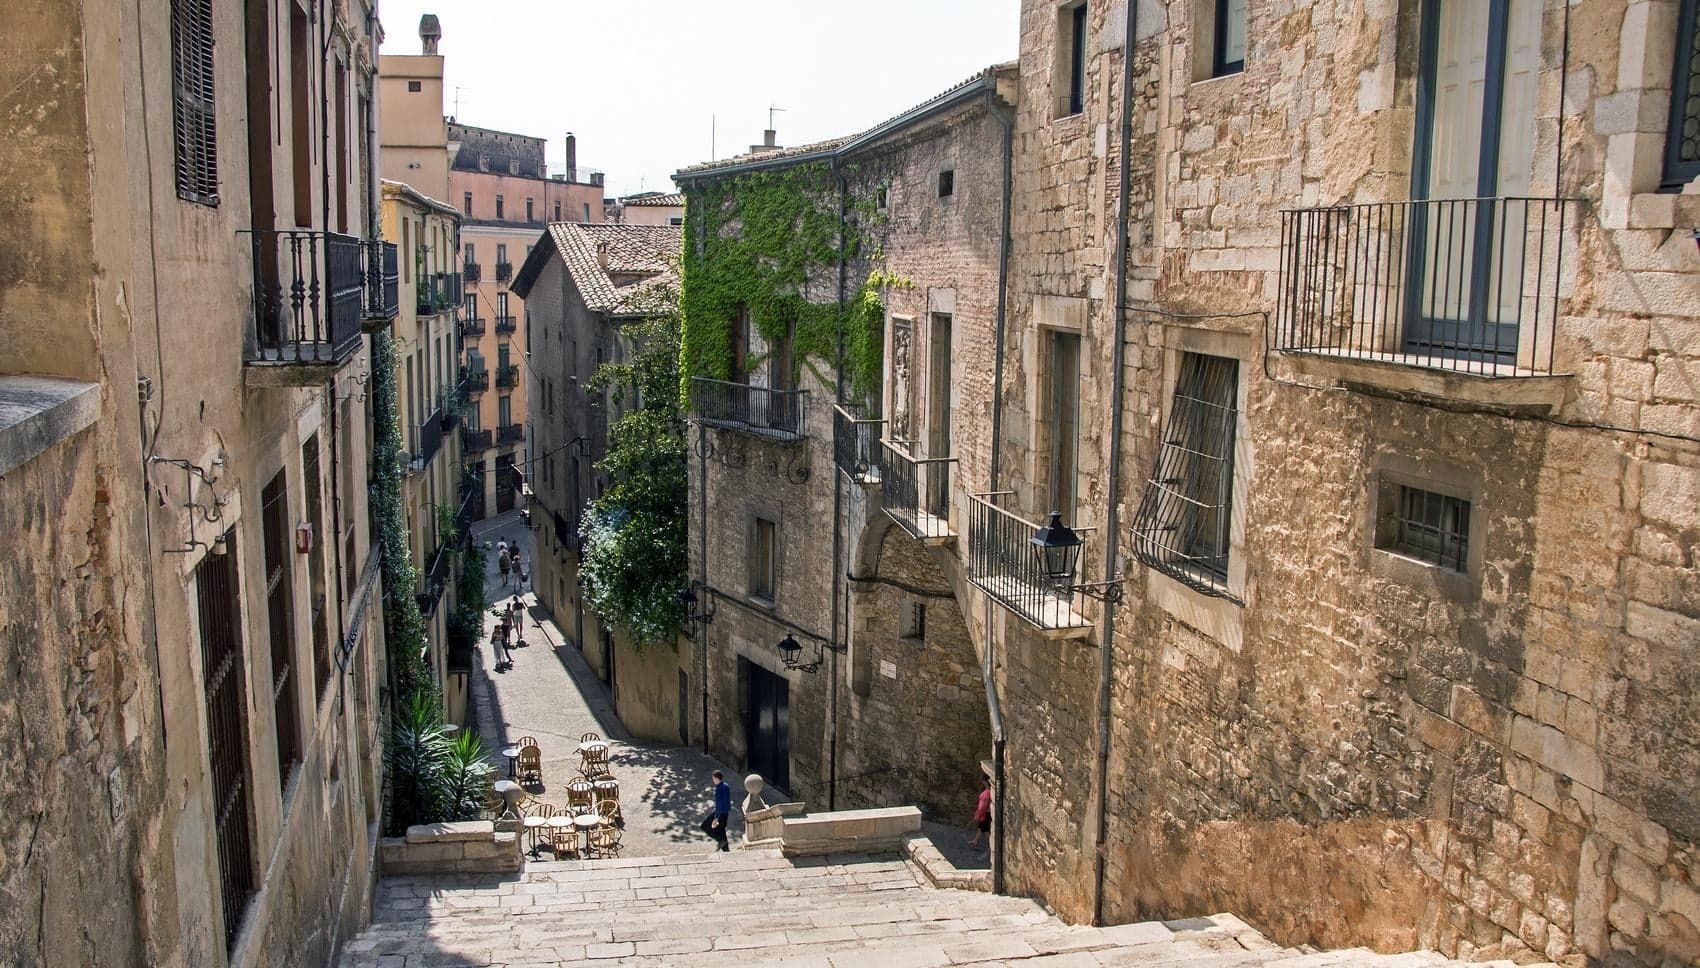 Girona, Spain — Braavos Cool places to visit, Filming